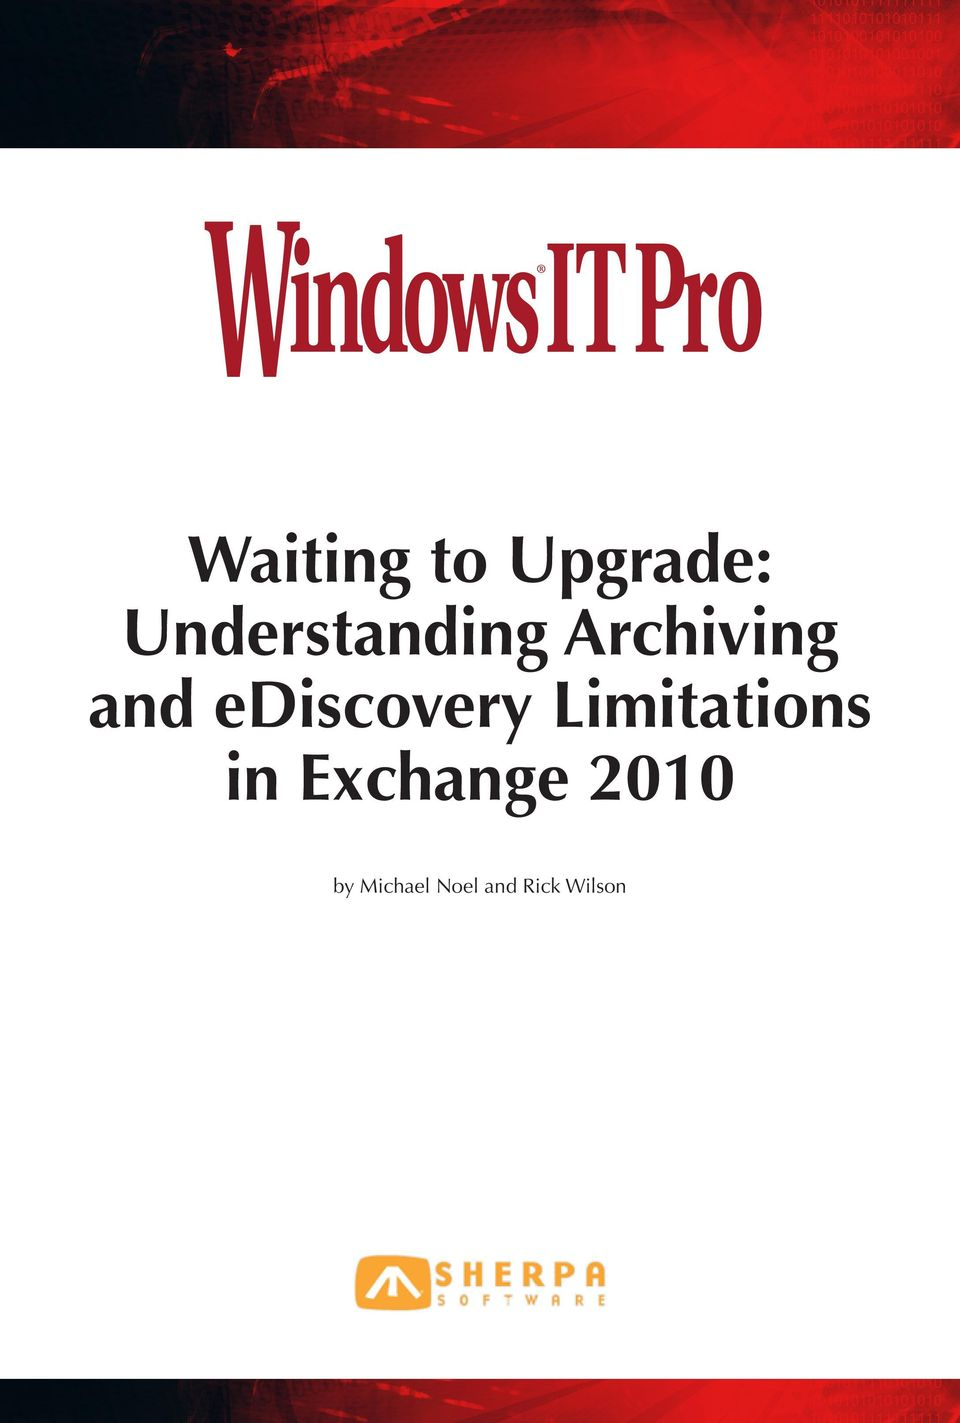 ediscovery Limitations in